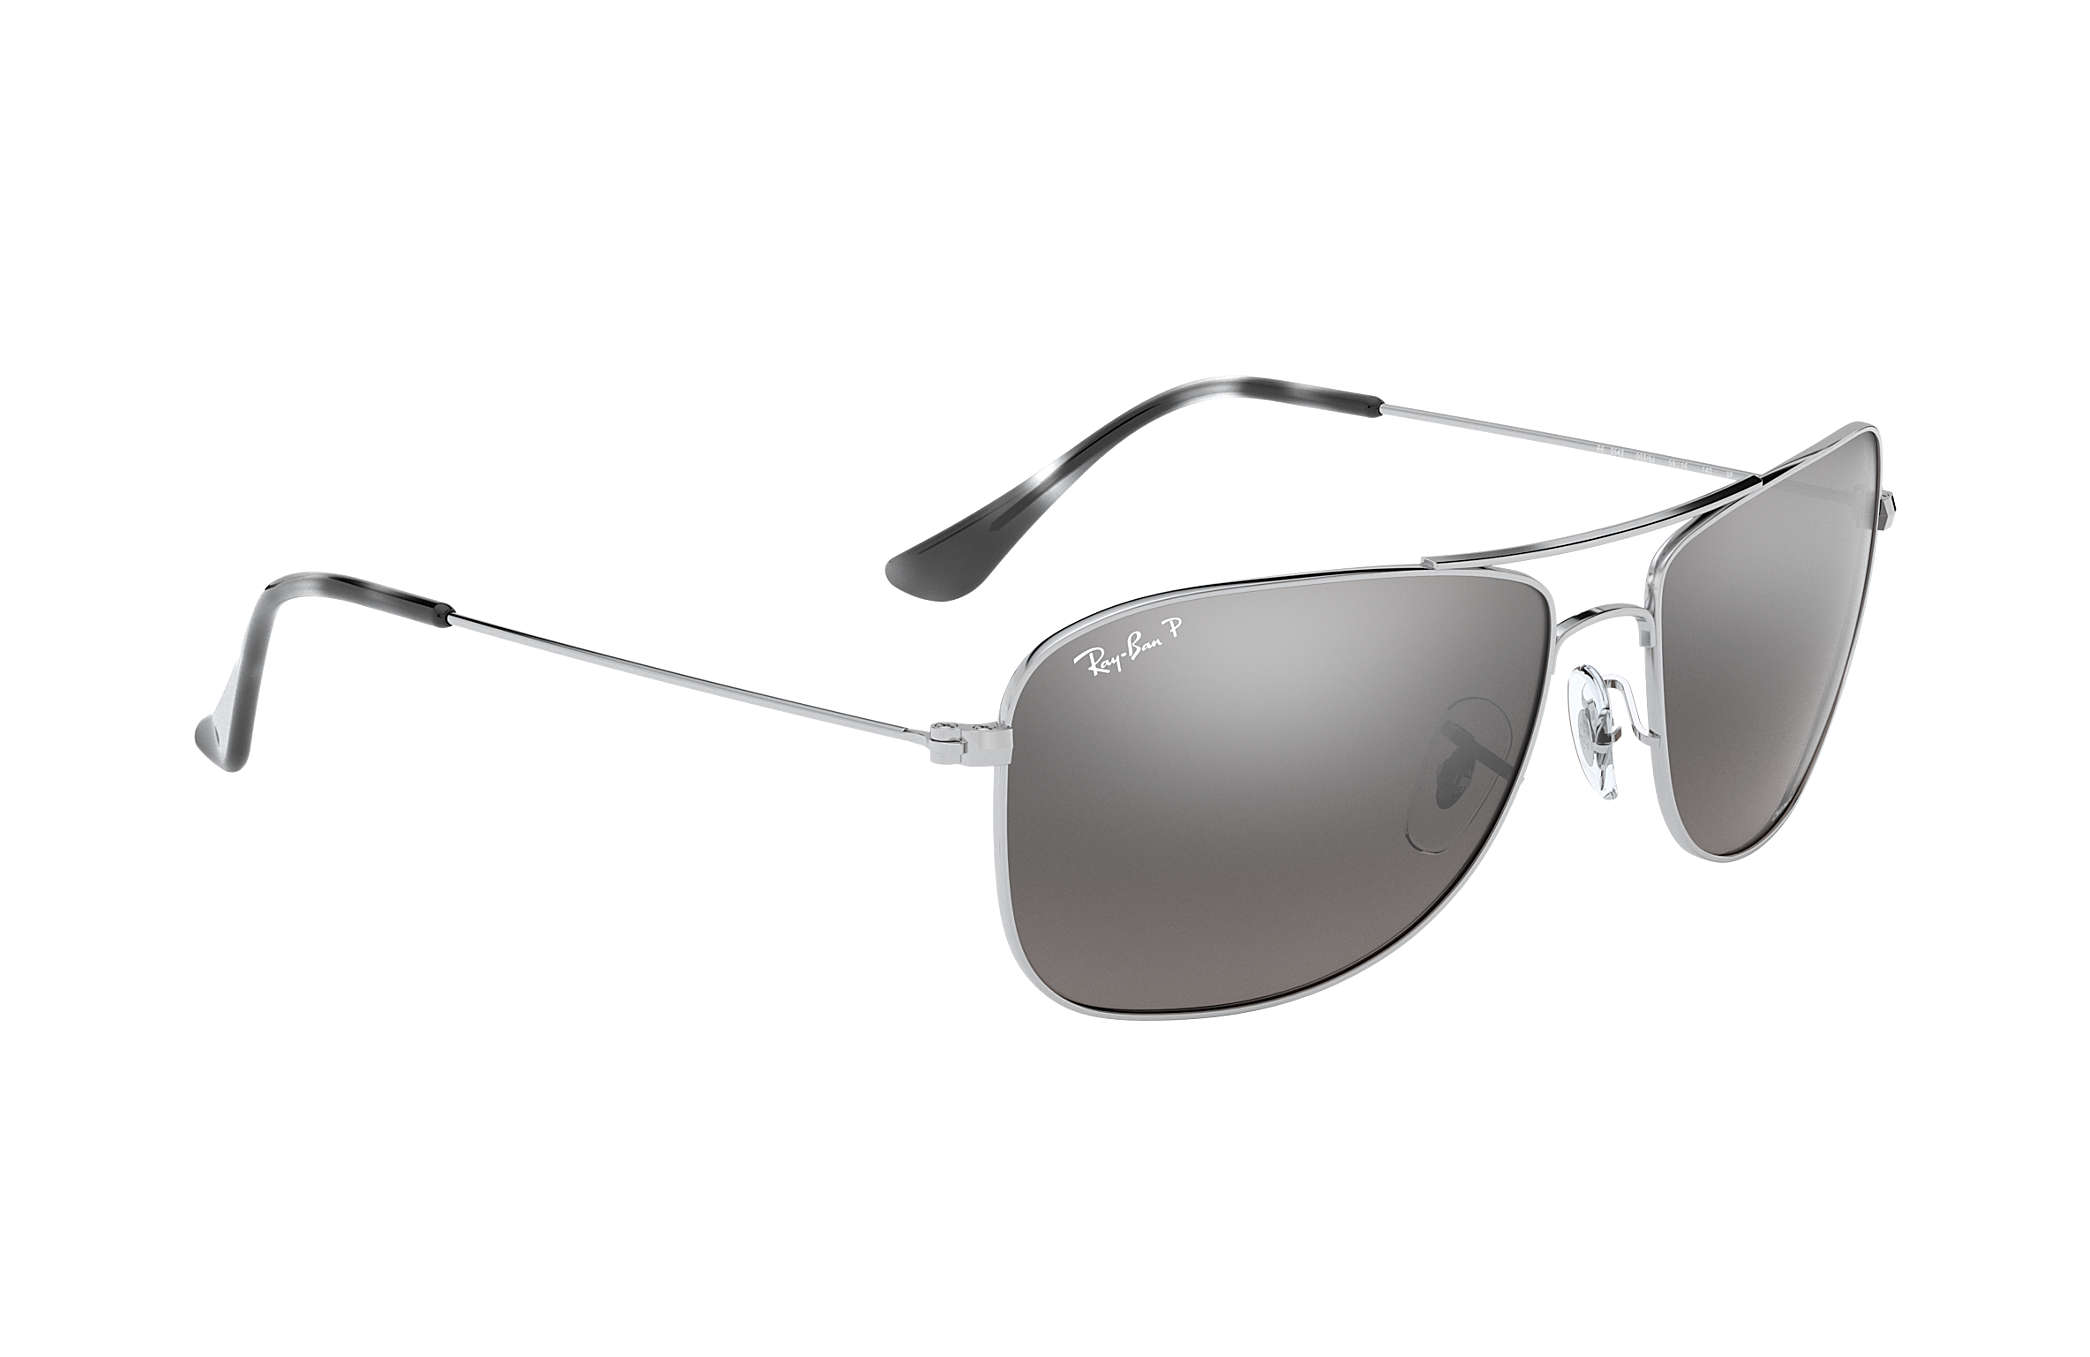 ray ban 3221  Ray-Ban RB3543 en Argent, Verre Argent